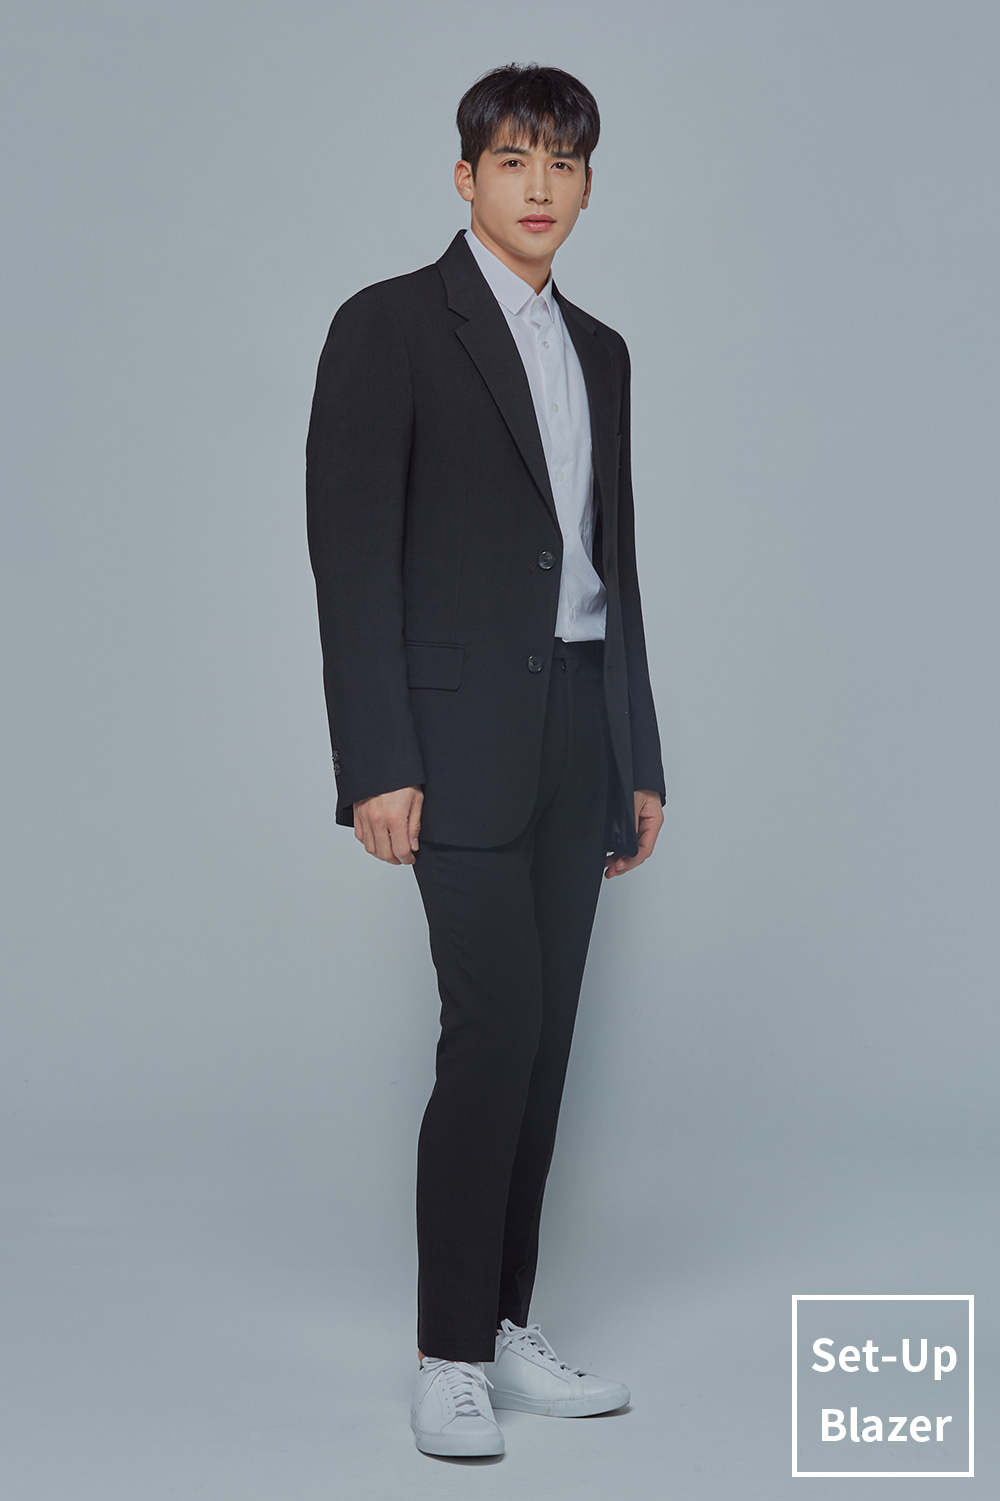 Set-Up Blazer (Black)